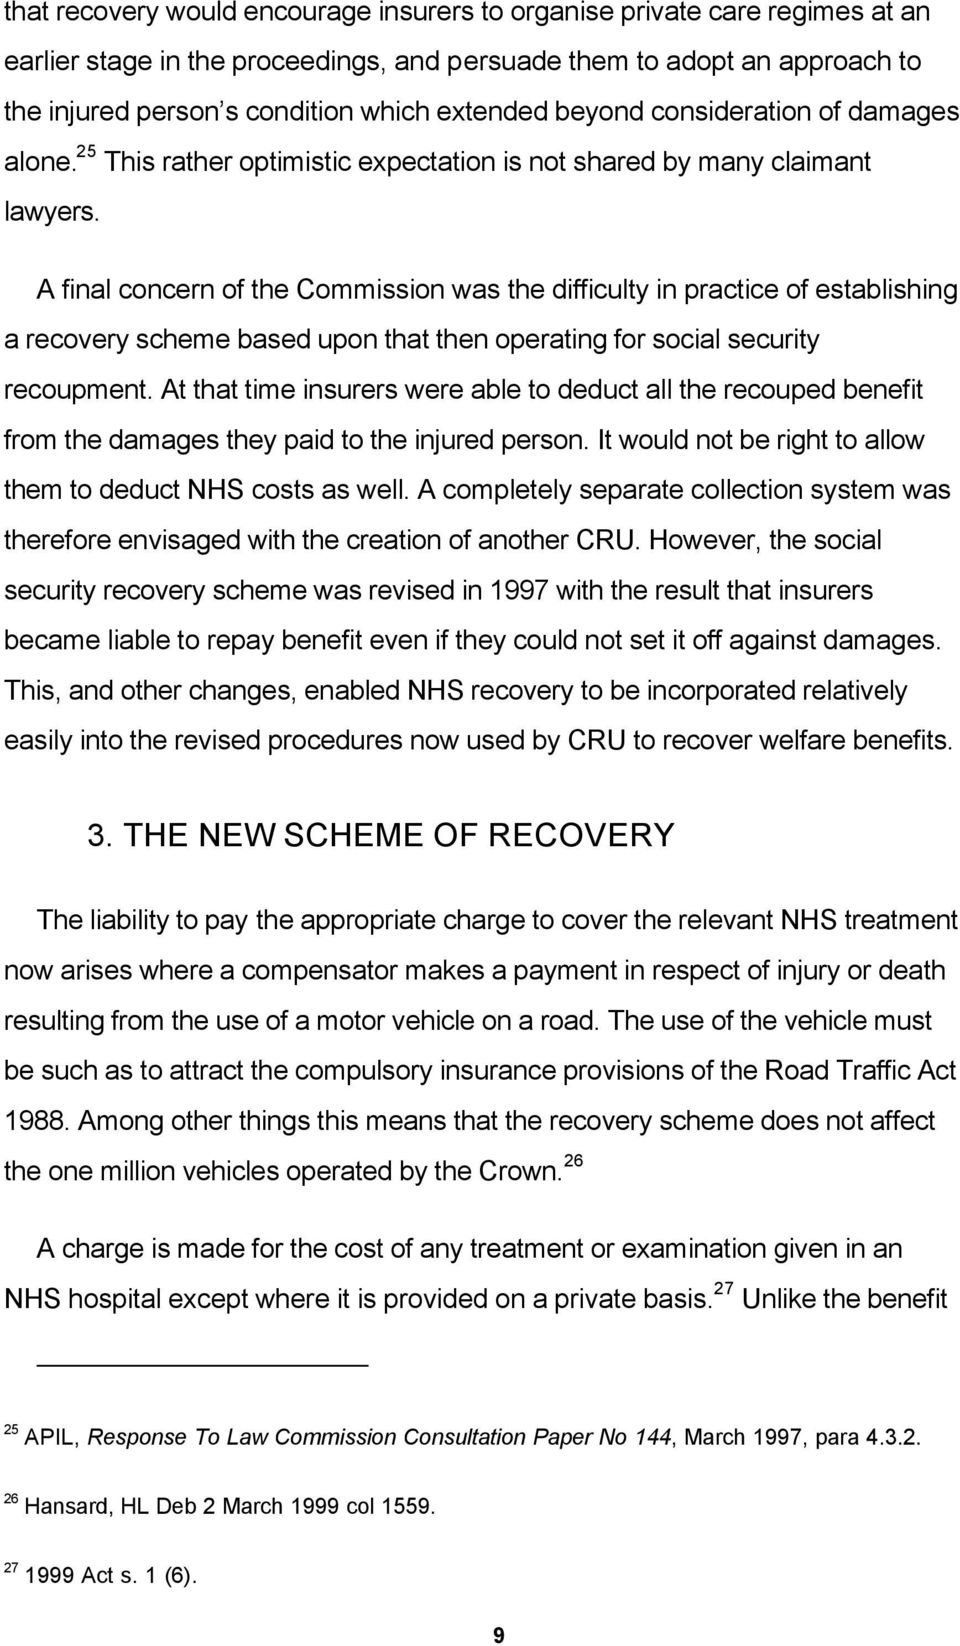 A final concern of the Commission was the difficulty in practice of establishing a recovery scheme based upon that then operating for social security recoupment.